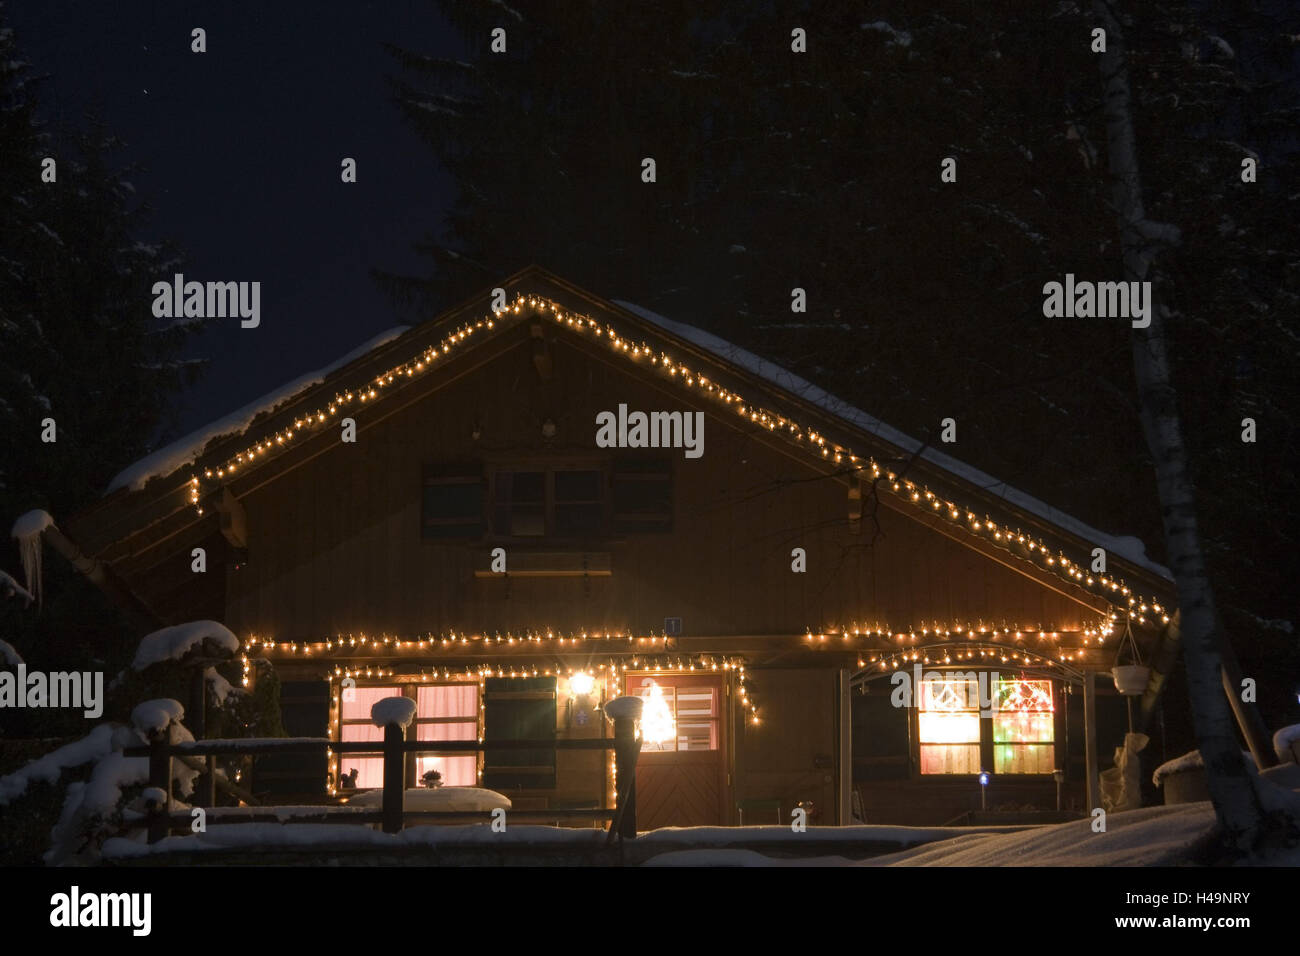 Window at night from outside - Steelworks Illuminated For Christmas Candle Lighted Rallies Outside Night Winter Christmas Yule Tide Wooden House Wooden Hut Snow Lights